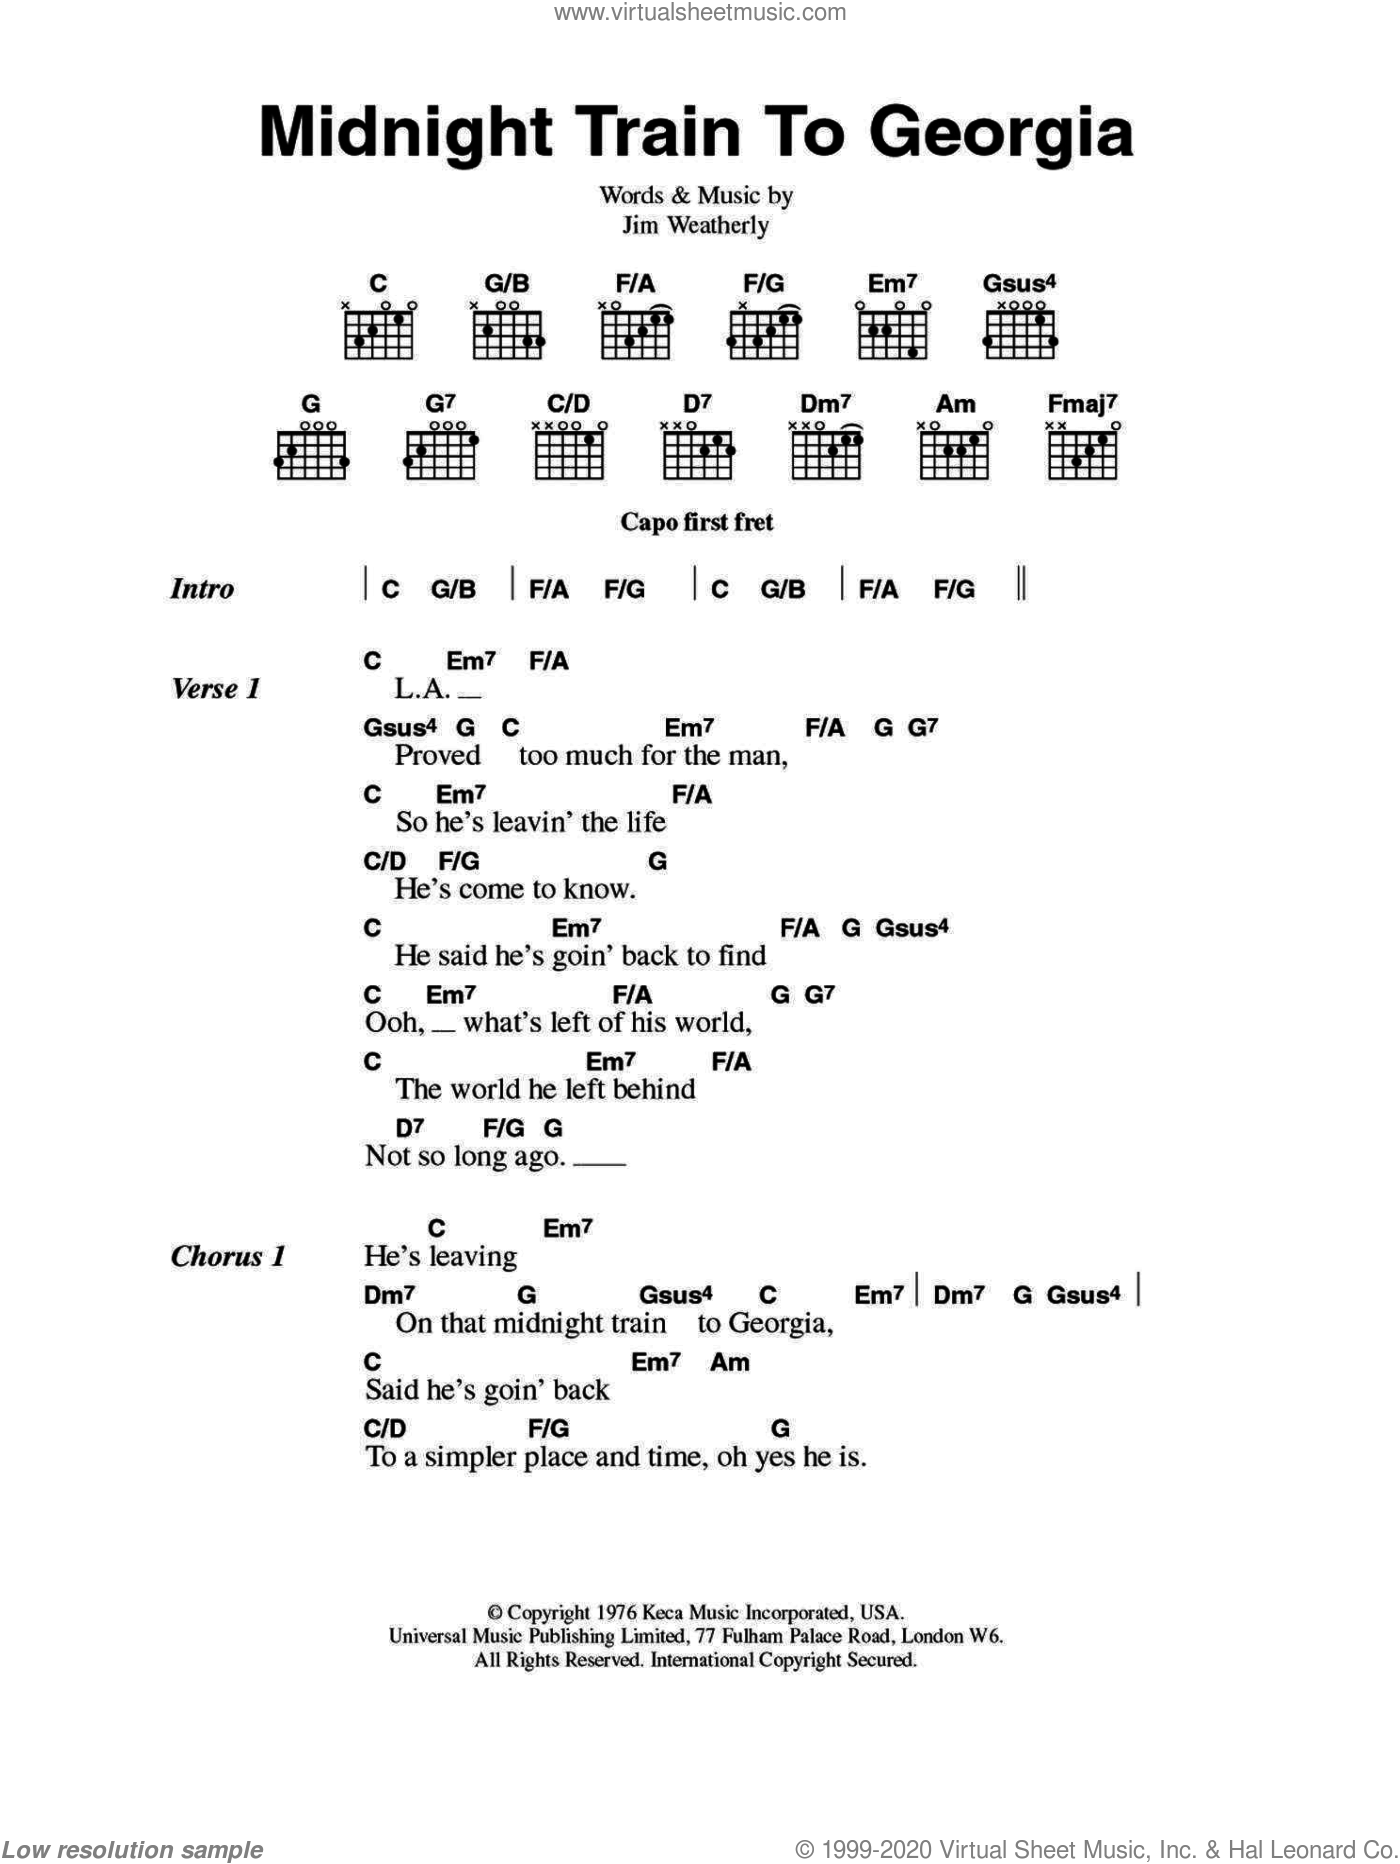 Midnight Train To Georgia sheet music for guitar (chords, lyrics, melody) by Jim Weatherly